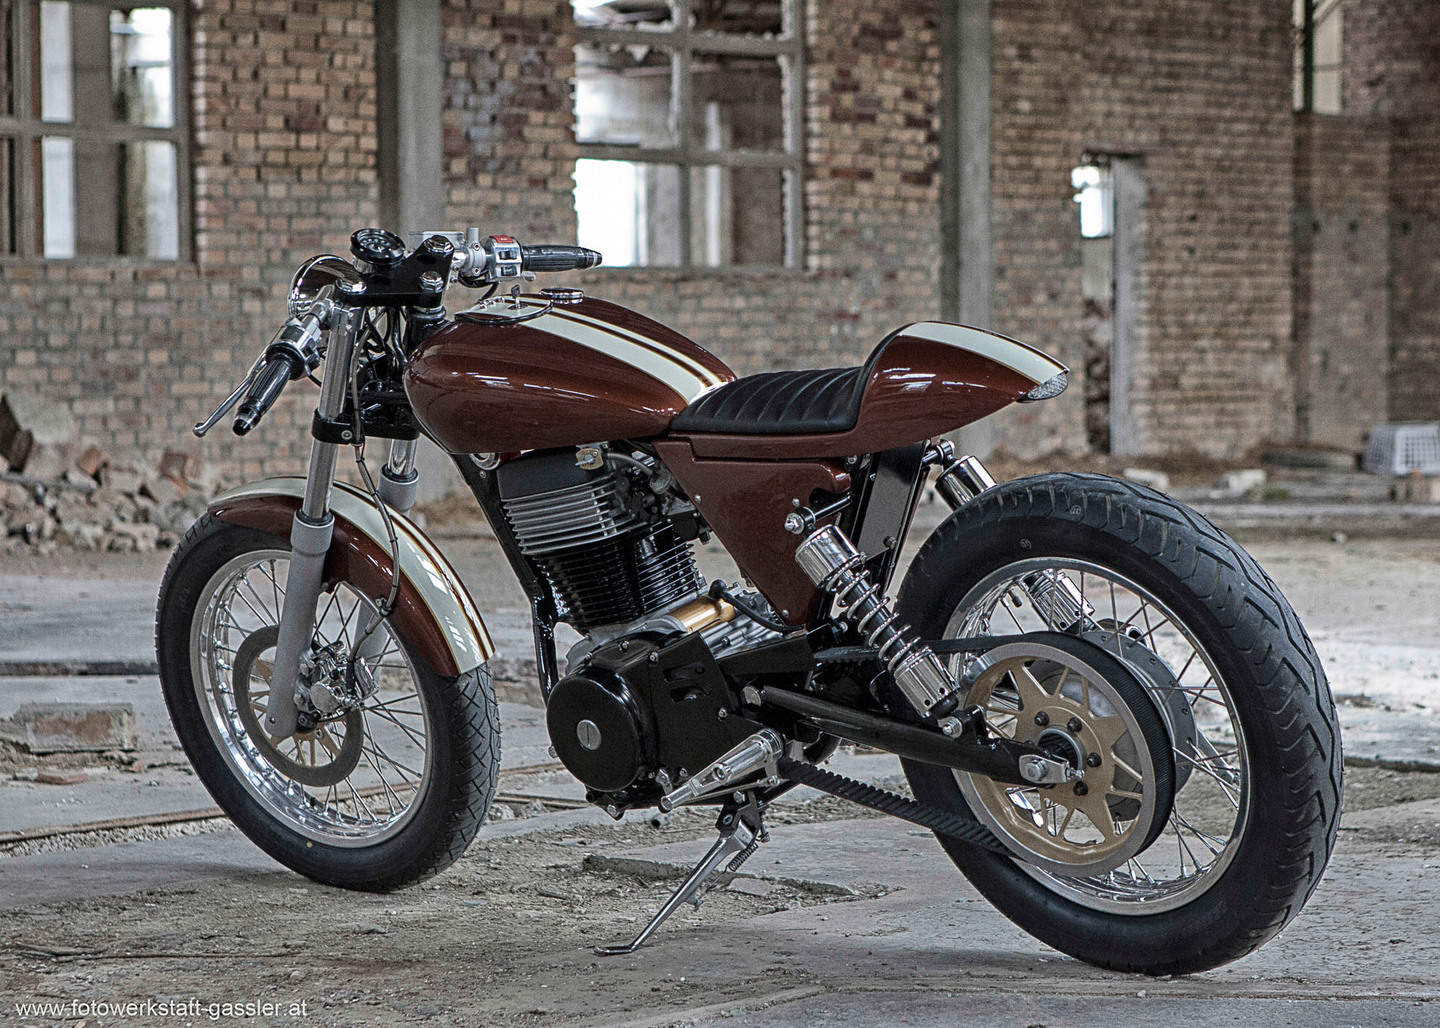 Suzuki Savage Cafe Racer